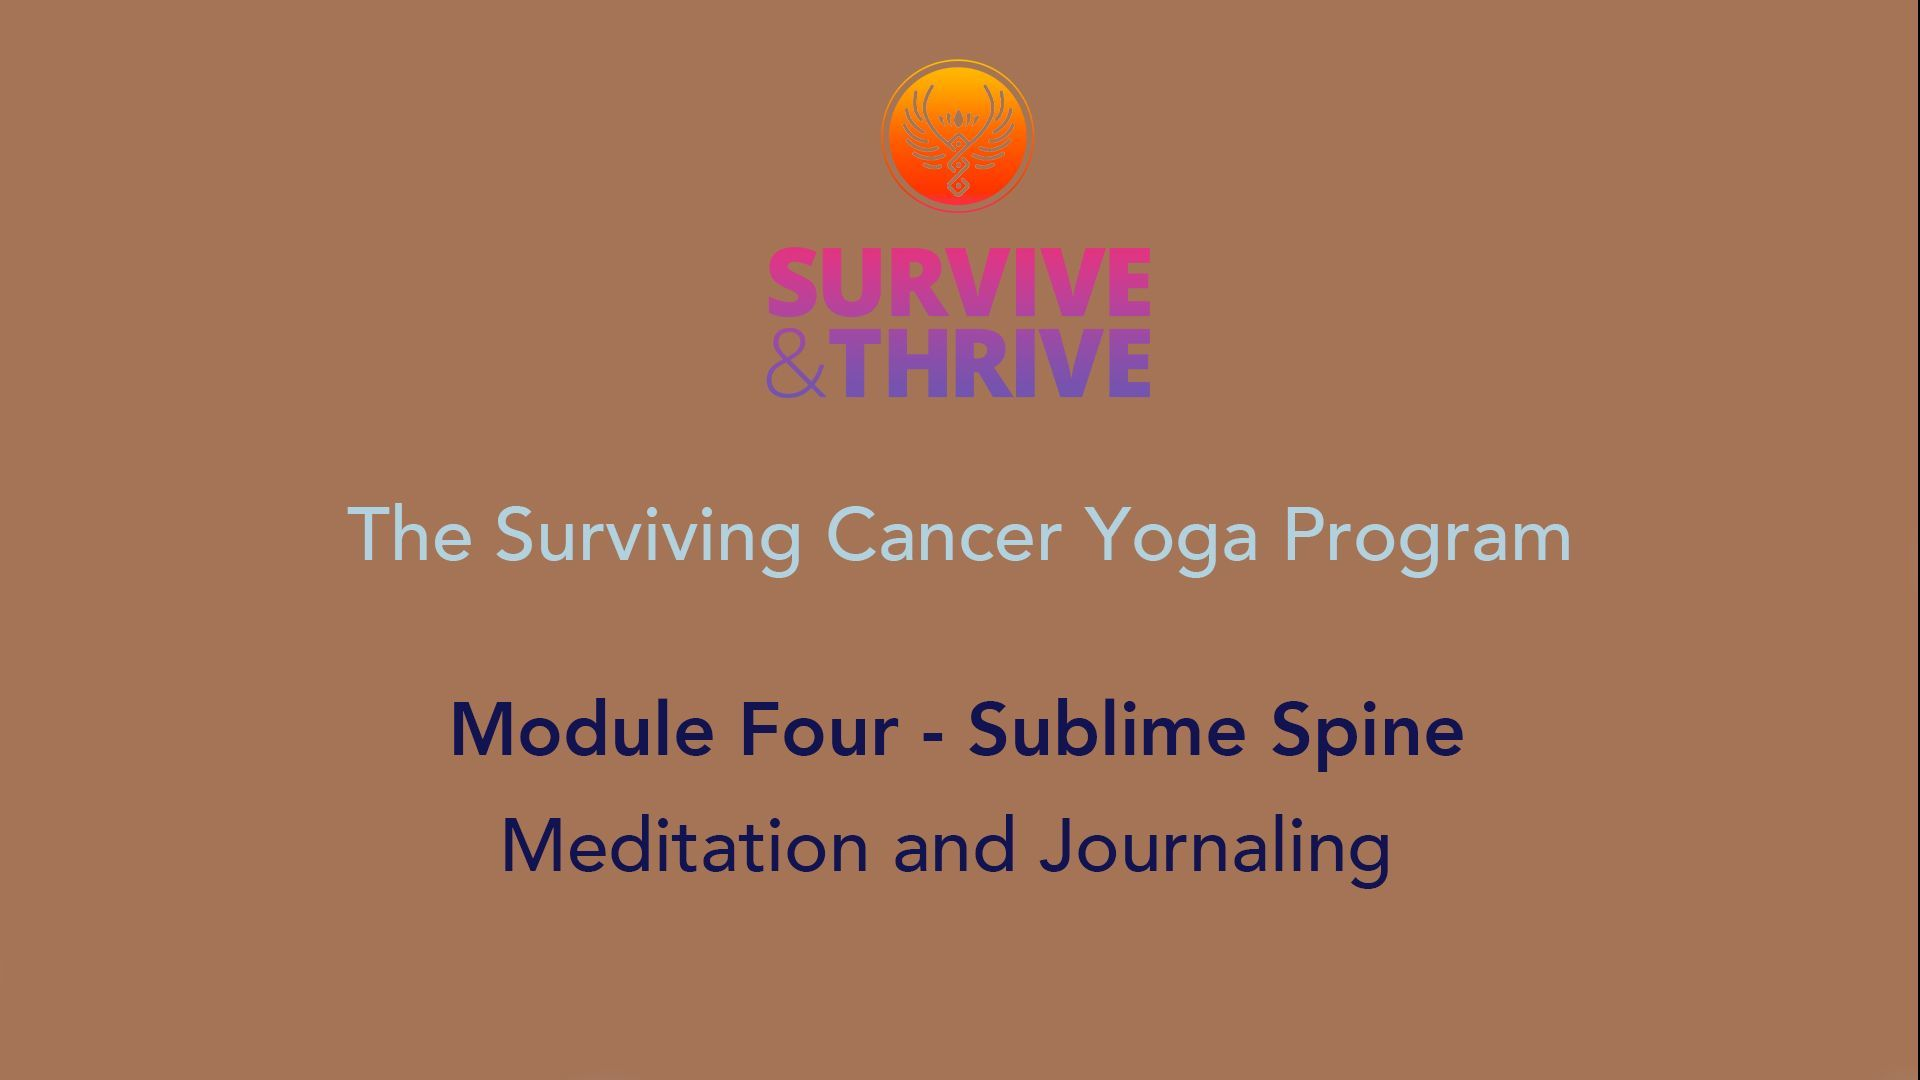 SURVIVE AND THRIVE | MODULE 4 - SUBLIME SPINE | MEDITATION